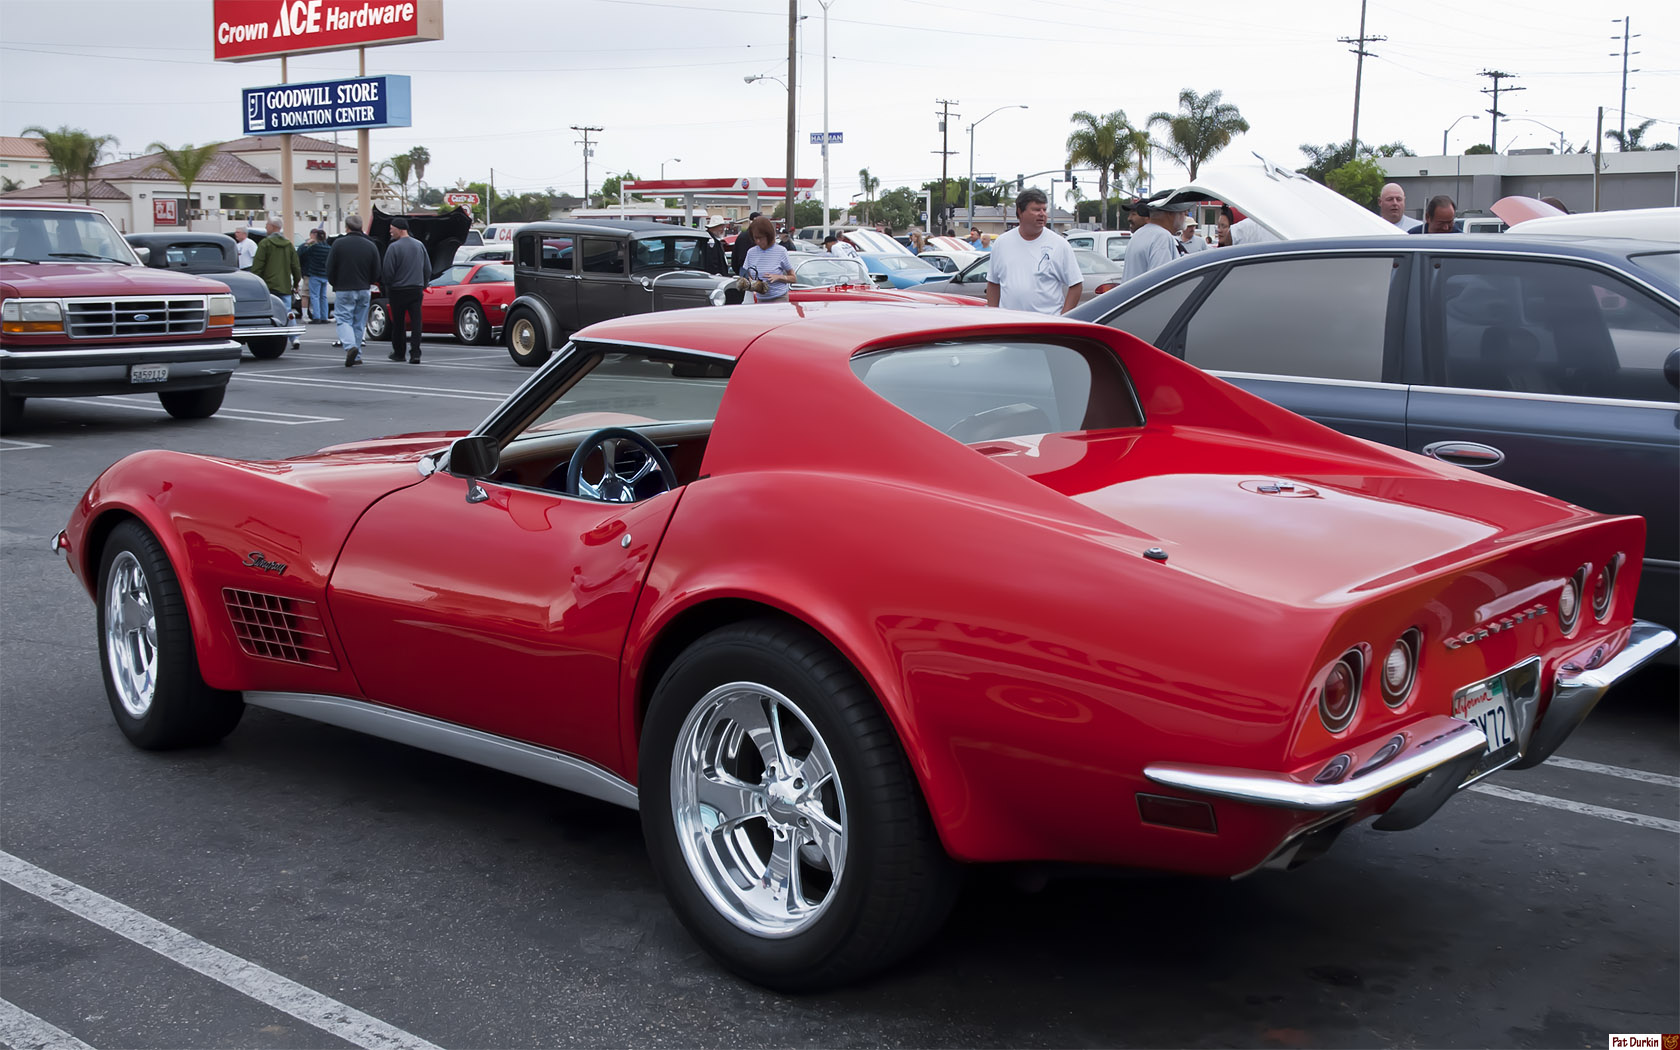 1972 Chevrolet Corvette Stingray Coupe with Removable T-Top - red